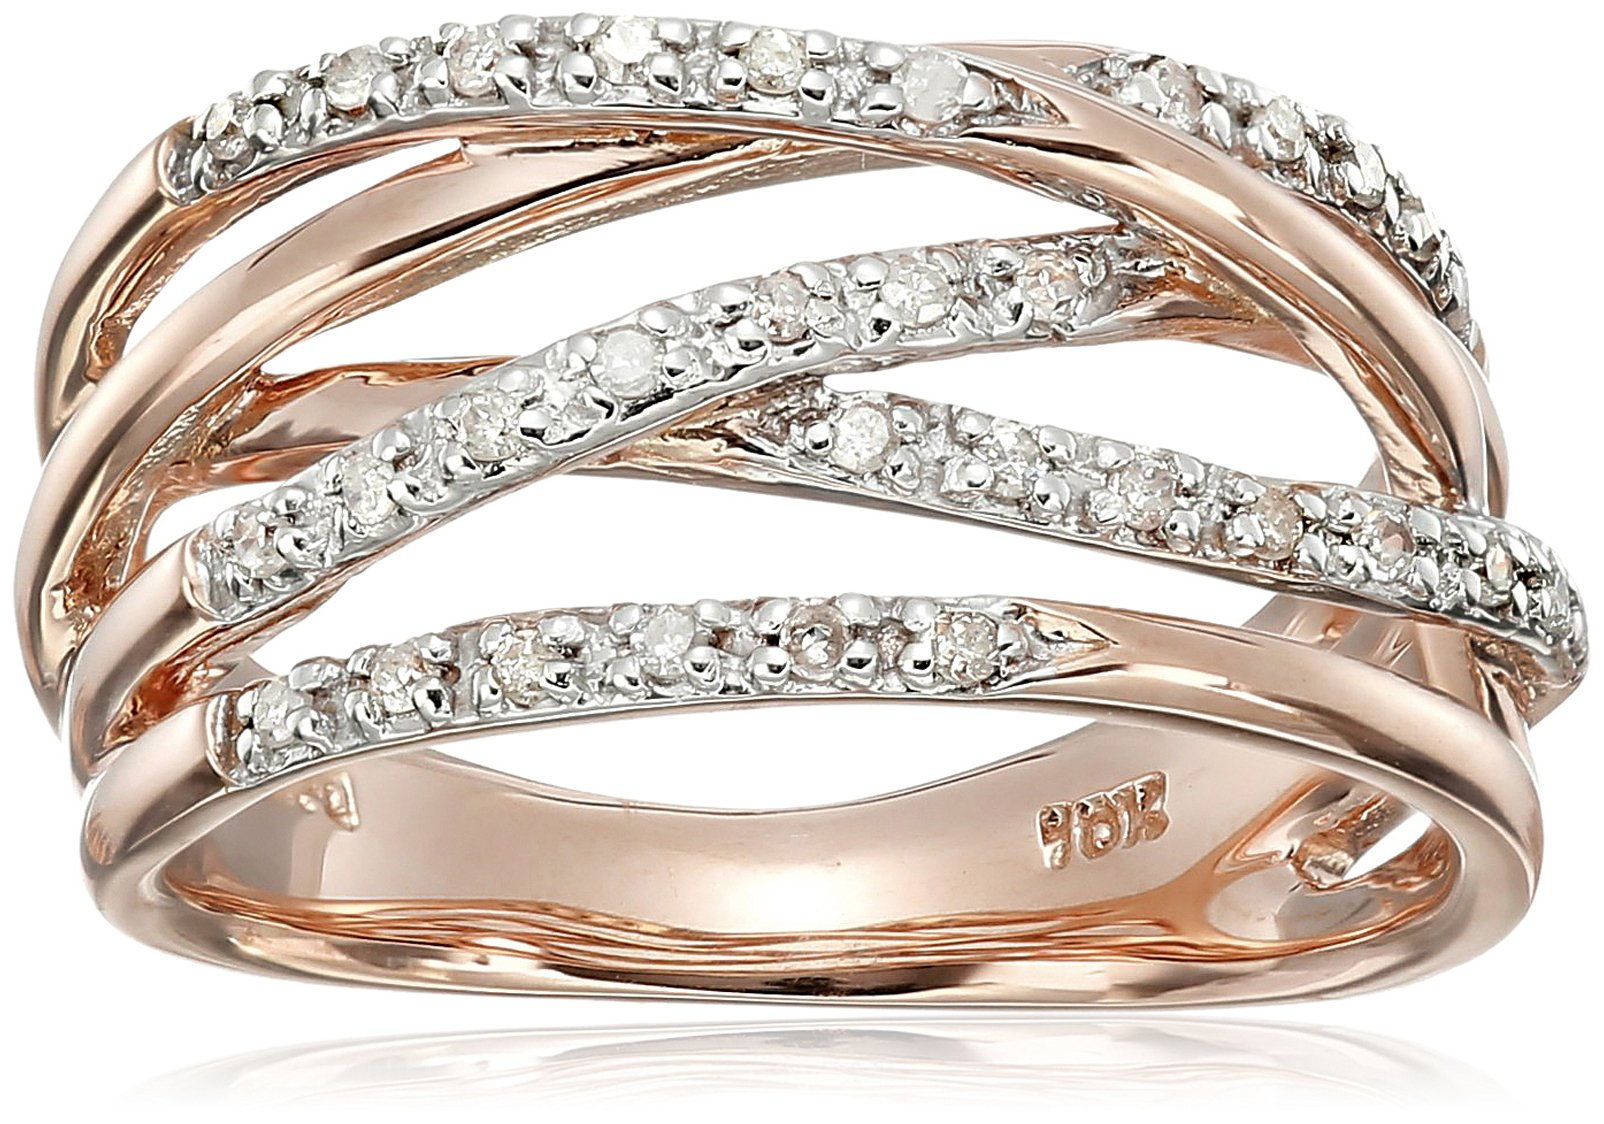 10k Rose Gold Woven Diamond Ring (0.14 cttw, I-J Color, I2-I3 Clarity), Size 6